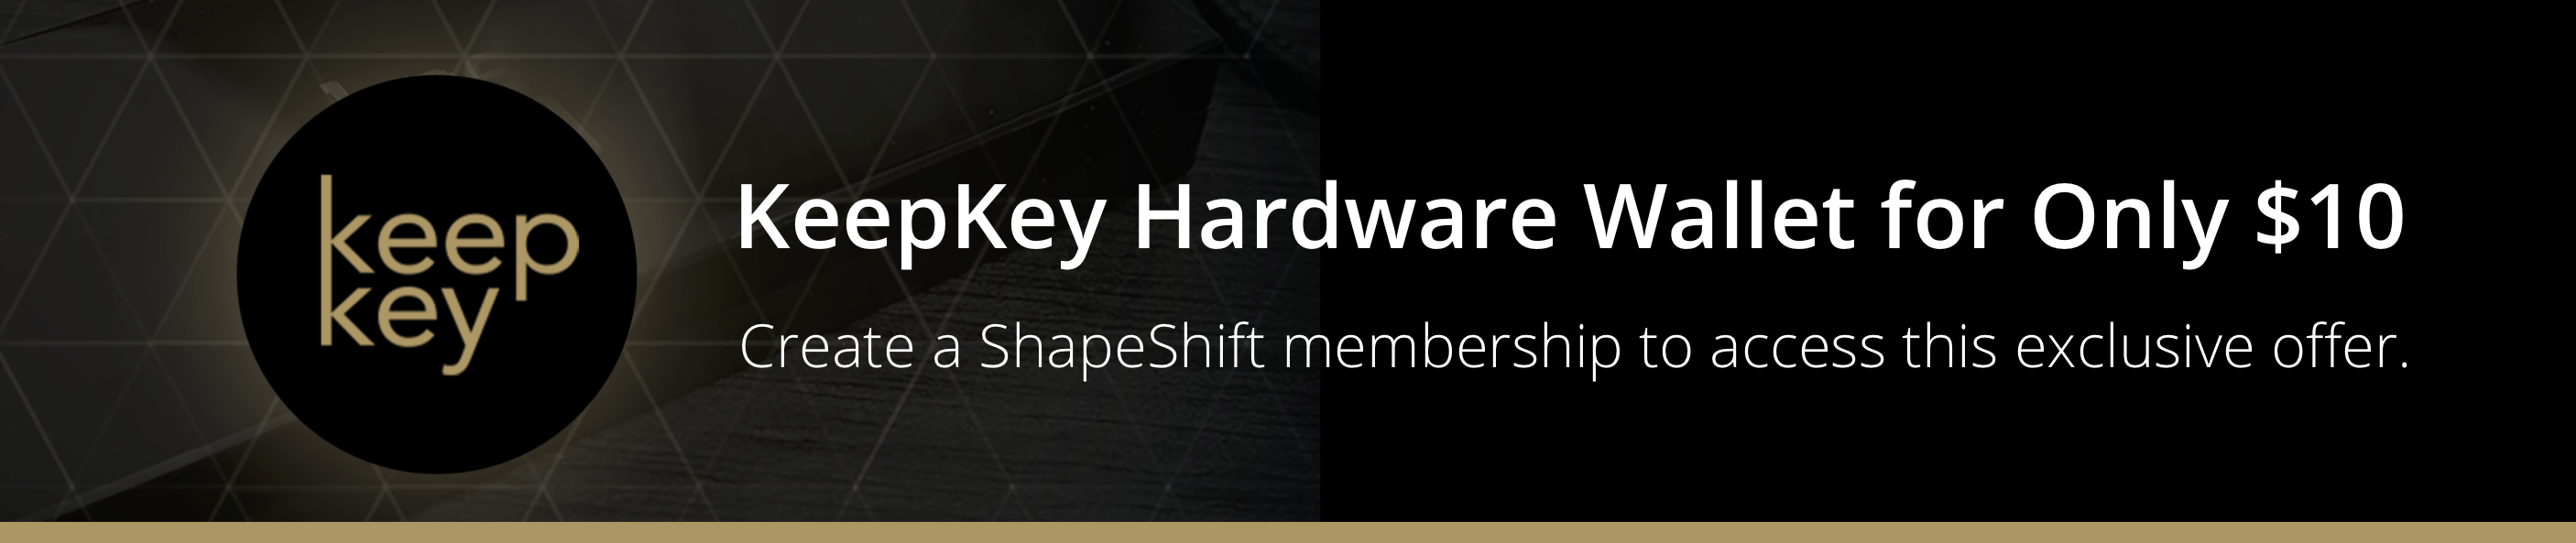 Redeem your KeepKey Hardware Wallet for only $10 with this ShapeShift Members Only discount.